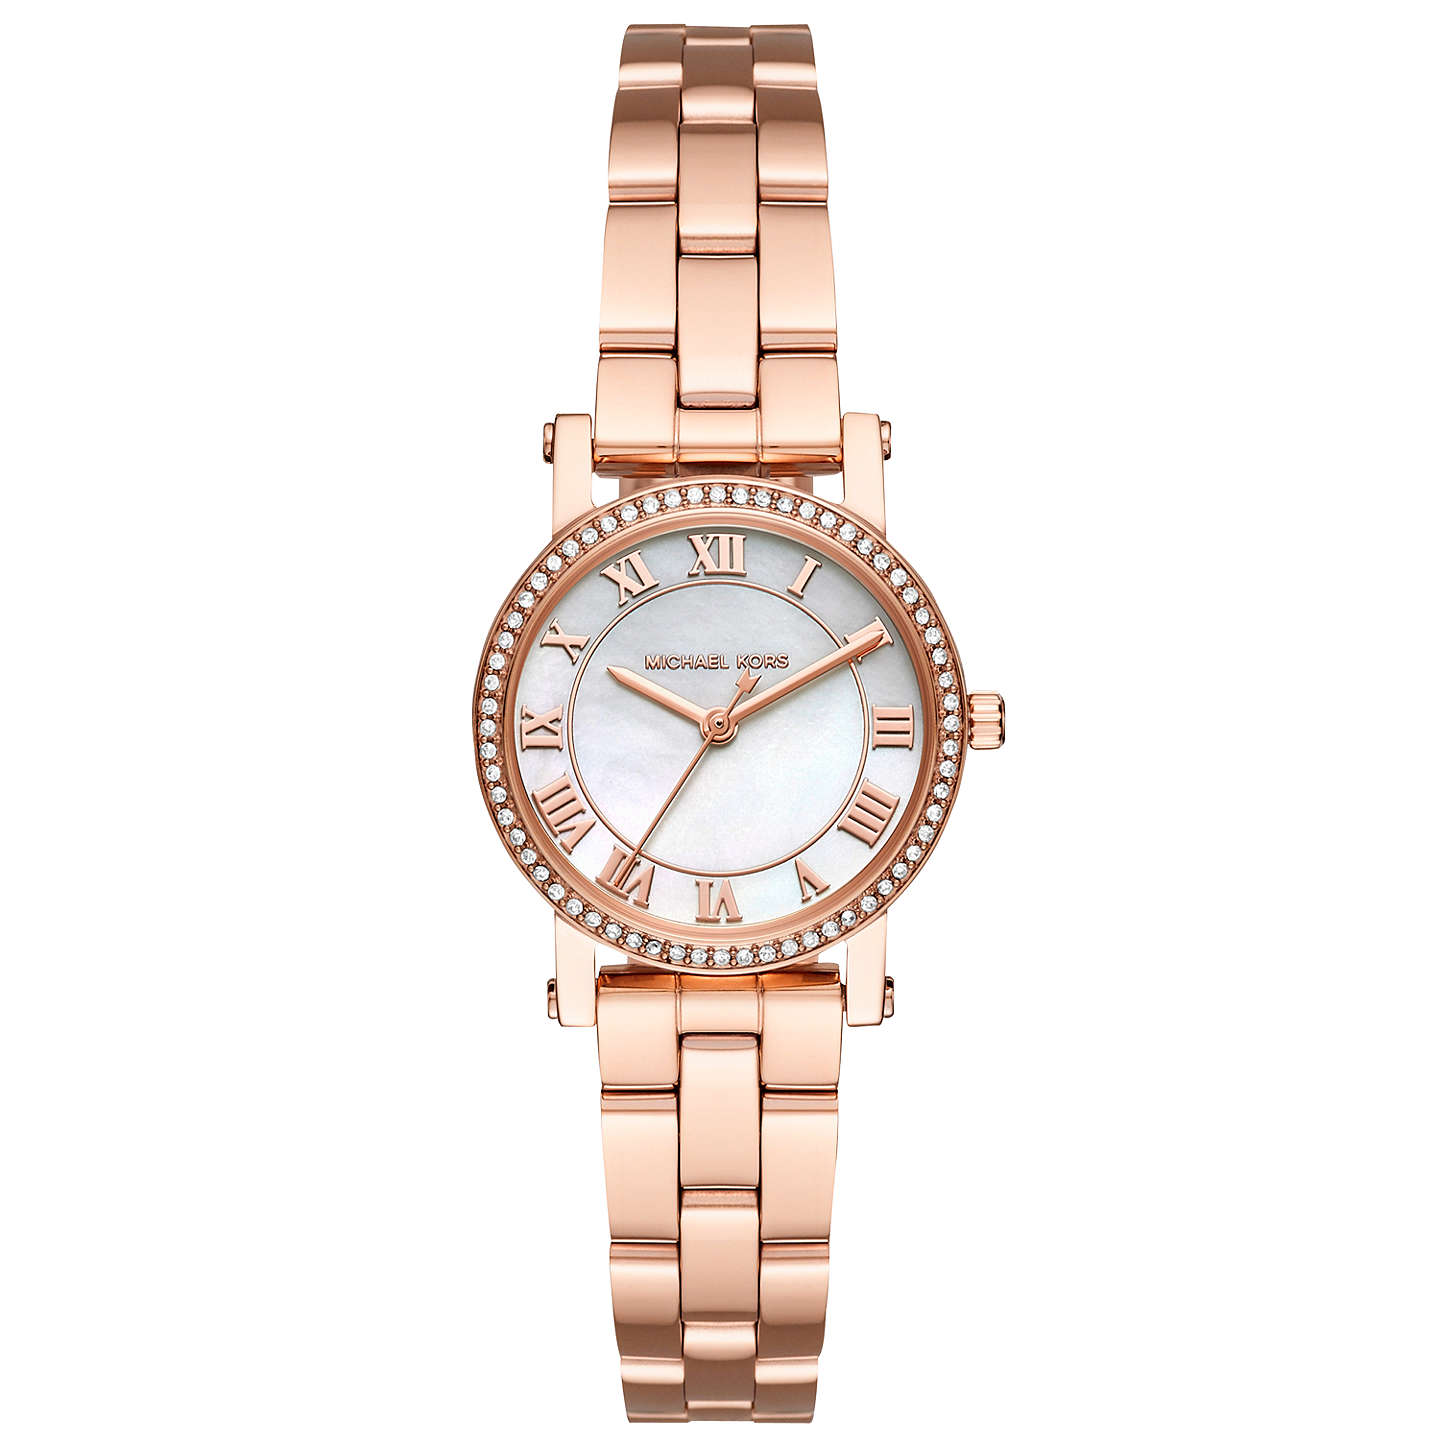 gold strap armani rose main watch s at rsp women bracelet exchange crystal buyarmani online watches chronograph pdp johnlewis